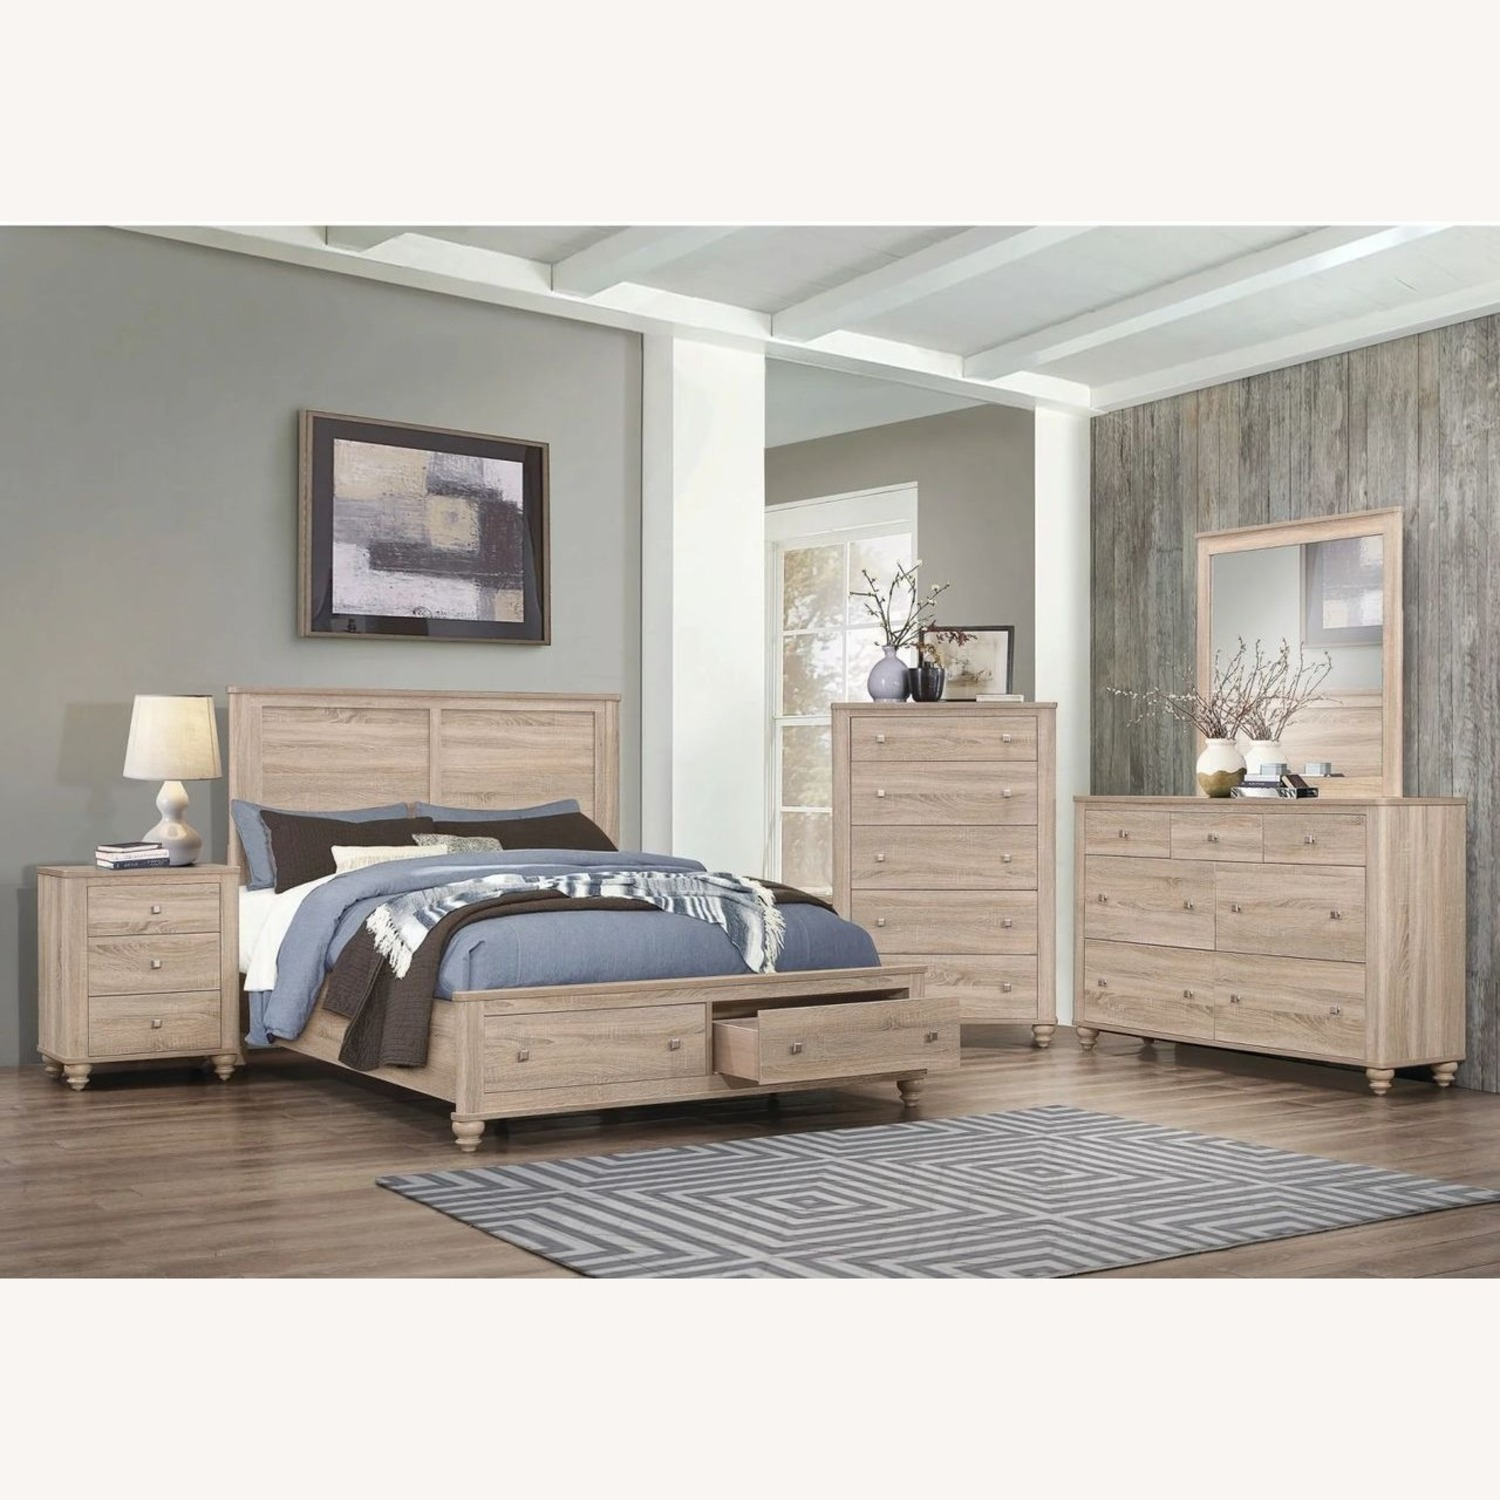 3-Drawer Nightstand In Natural Oak Finish - image-5